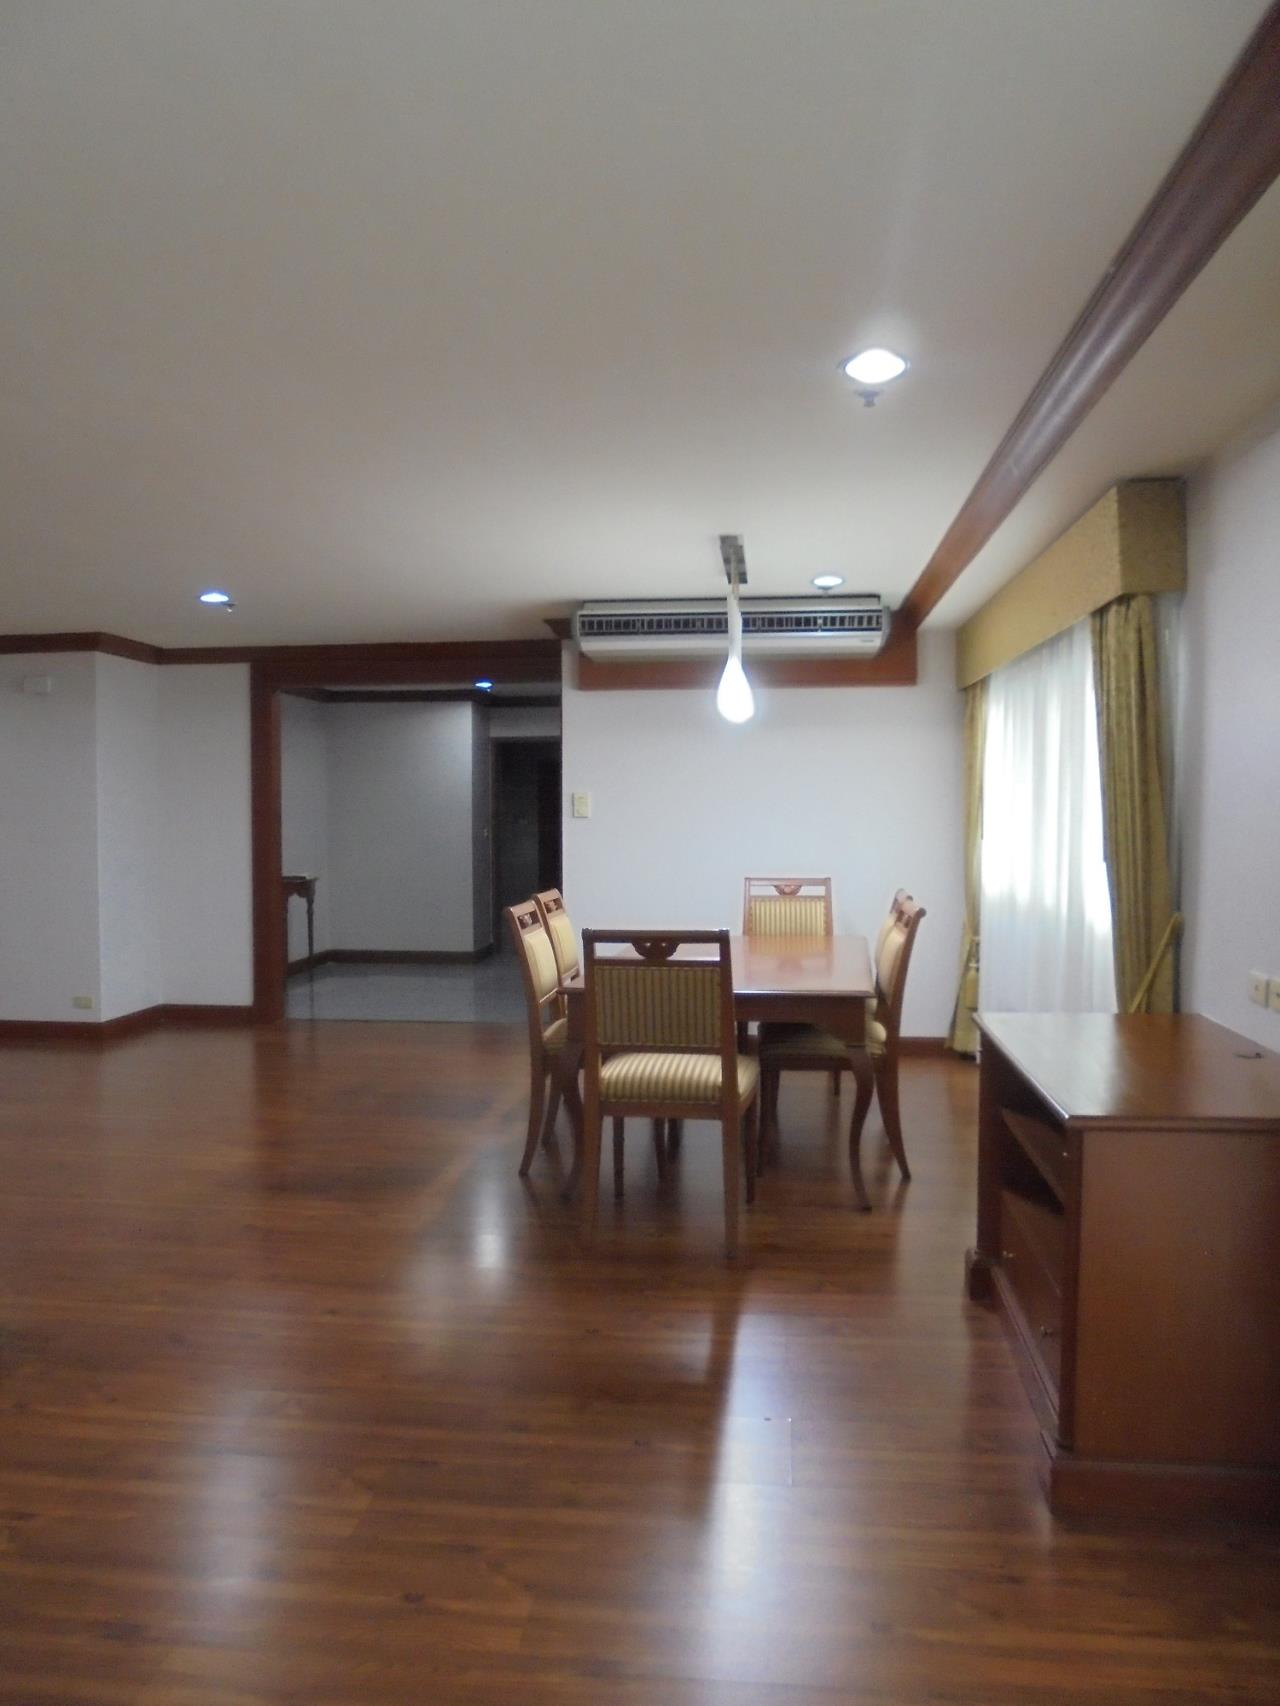 RE/MAX CondoDee Agency's Penthouse for Rent in Asoke - Quite & Central Location 9